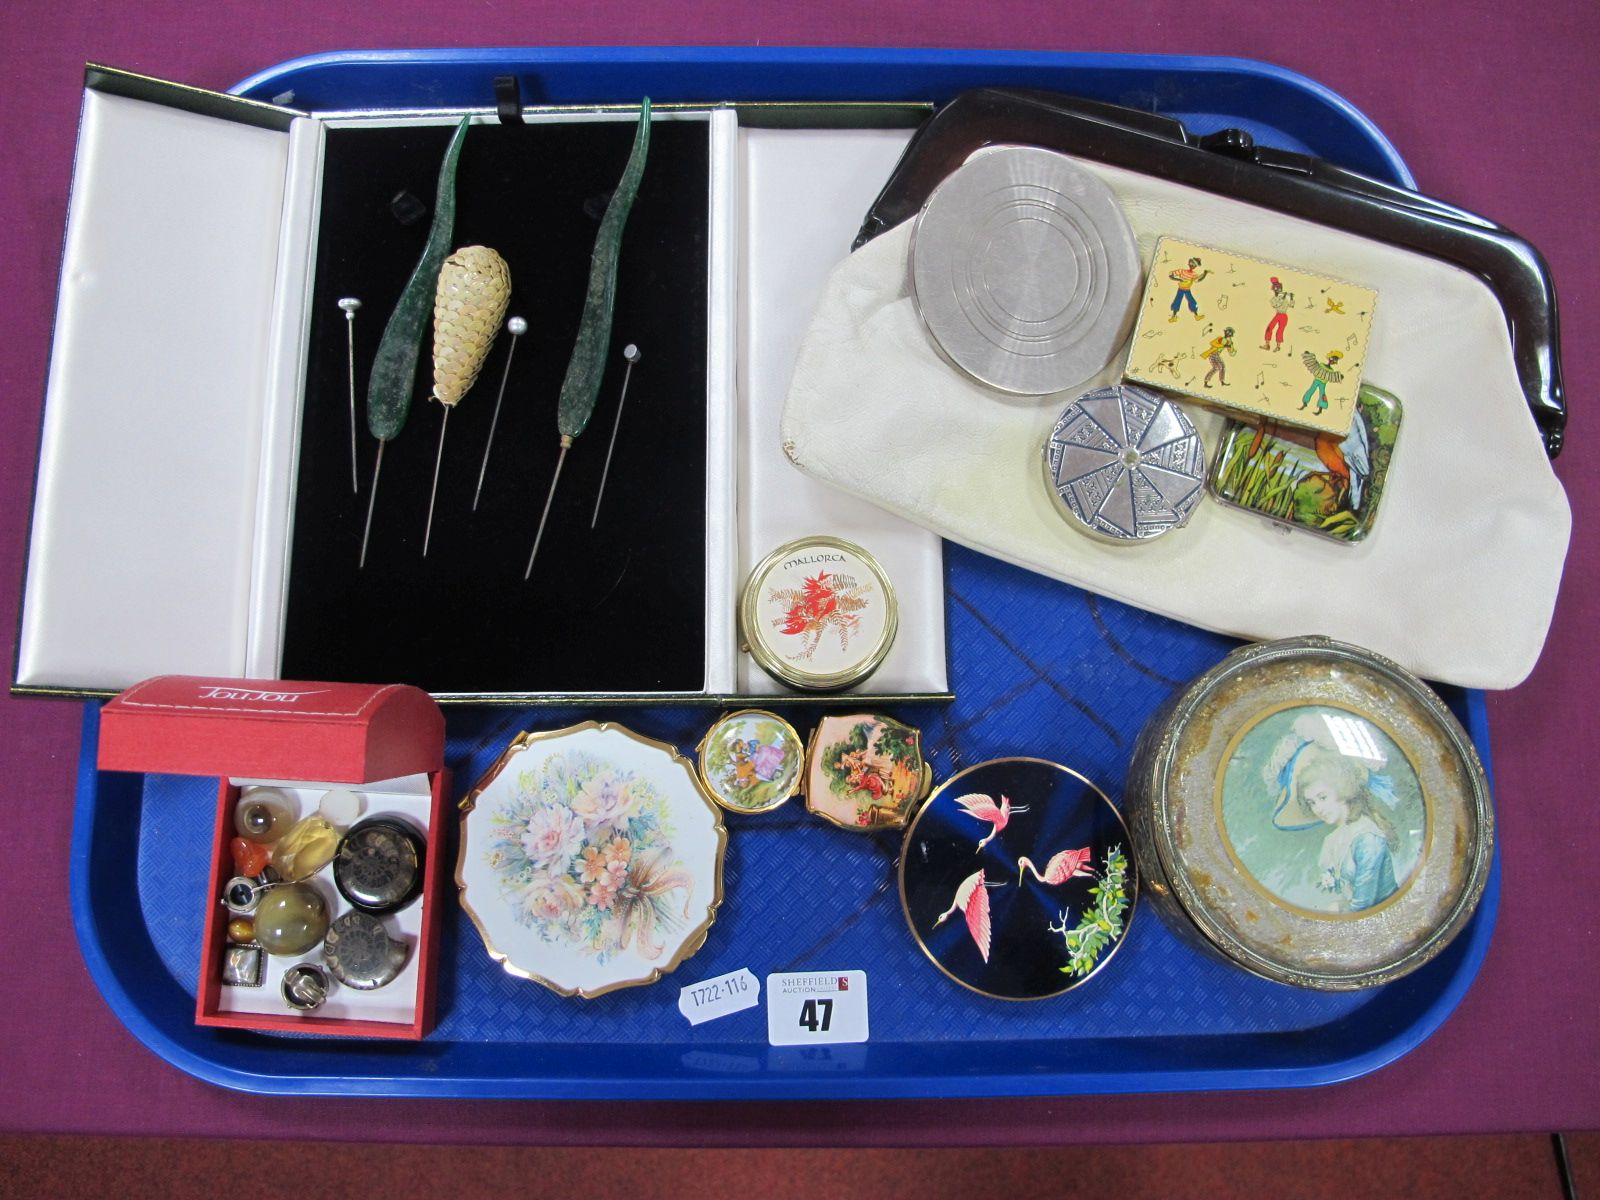 Two Stratton Powder Compacts, of various designs, a Shalimar powder box, of textured design, and